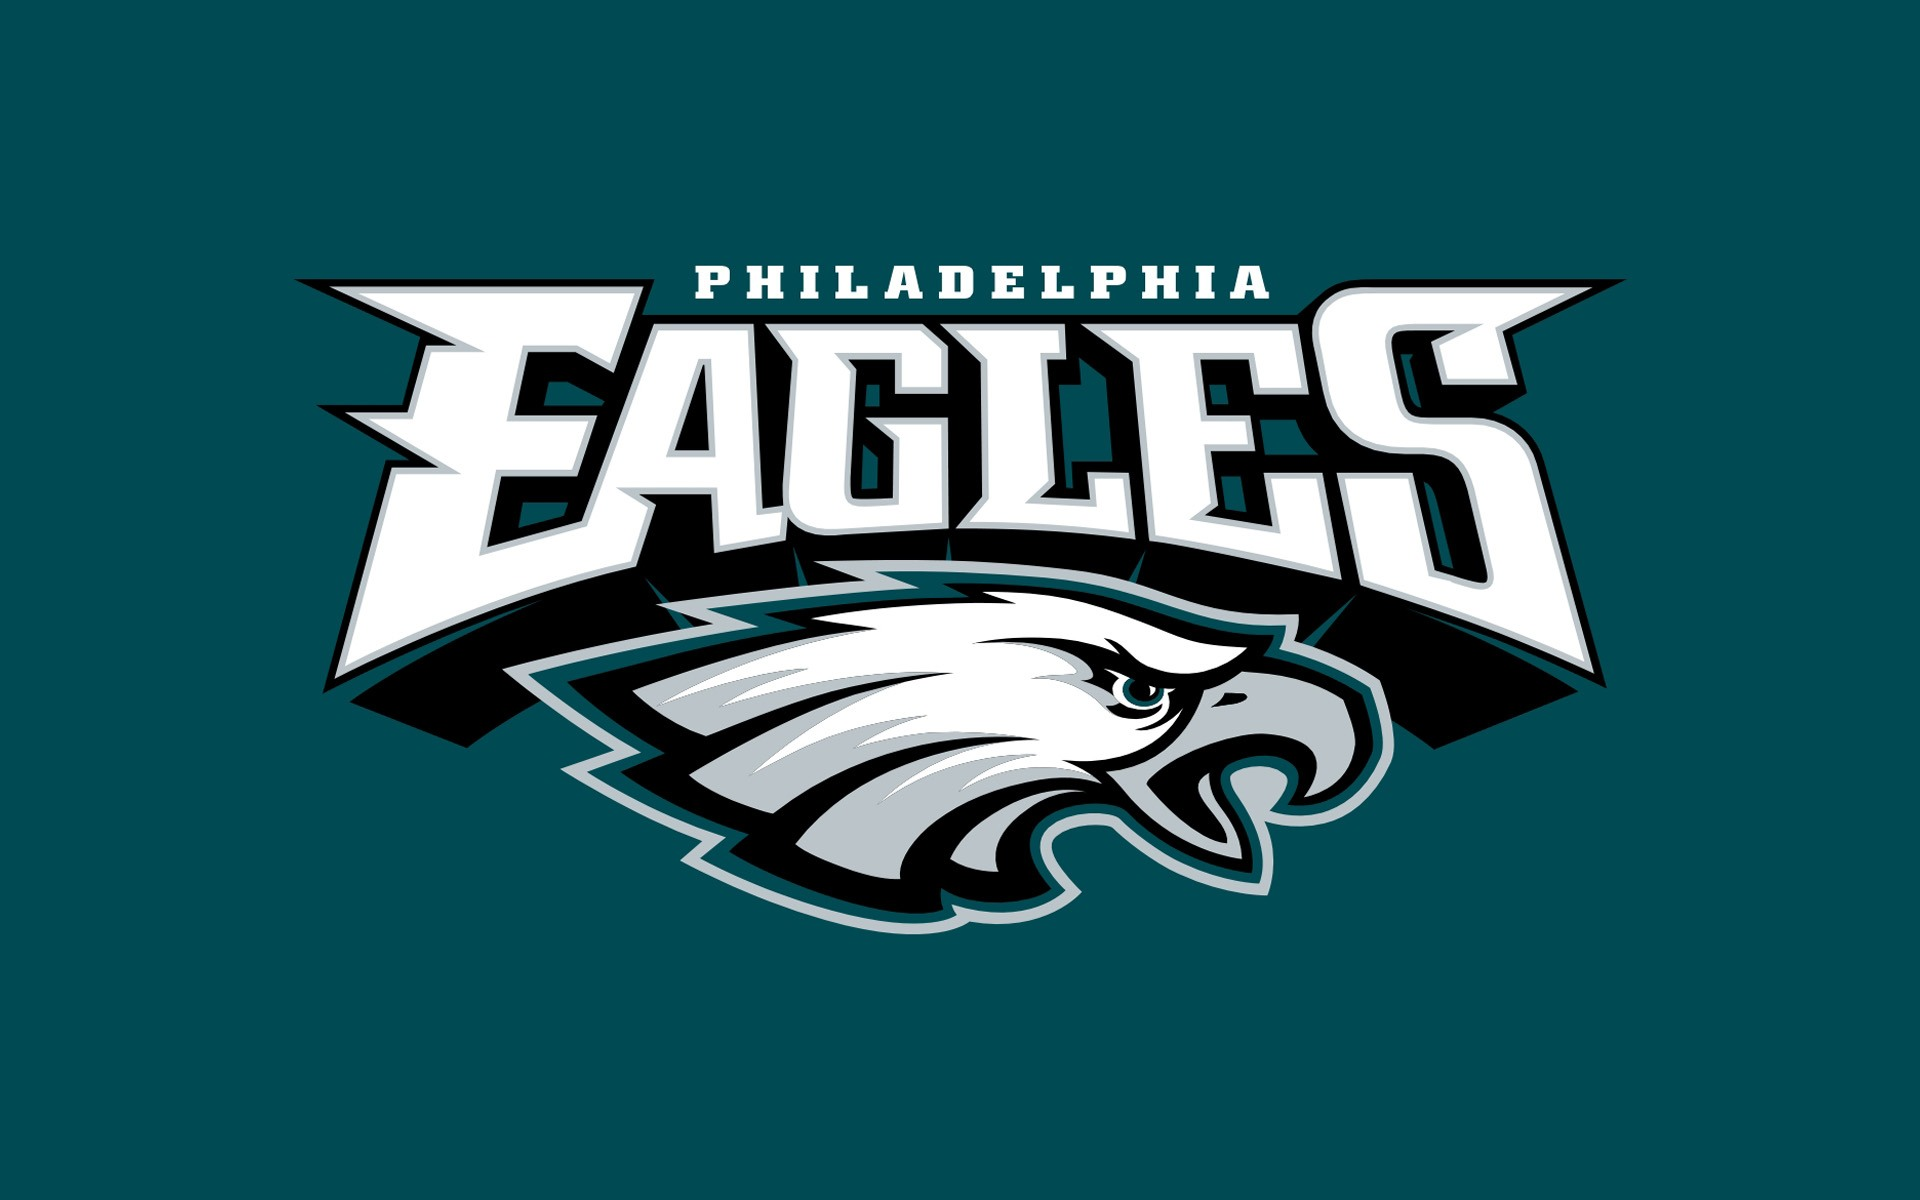 Philadelphia Eagles desktop wallpaper 1920x1200